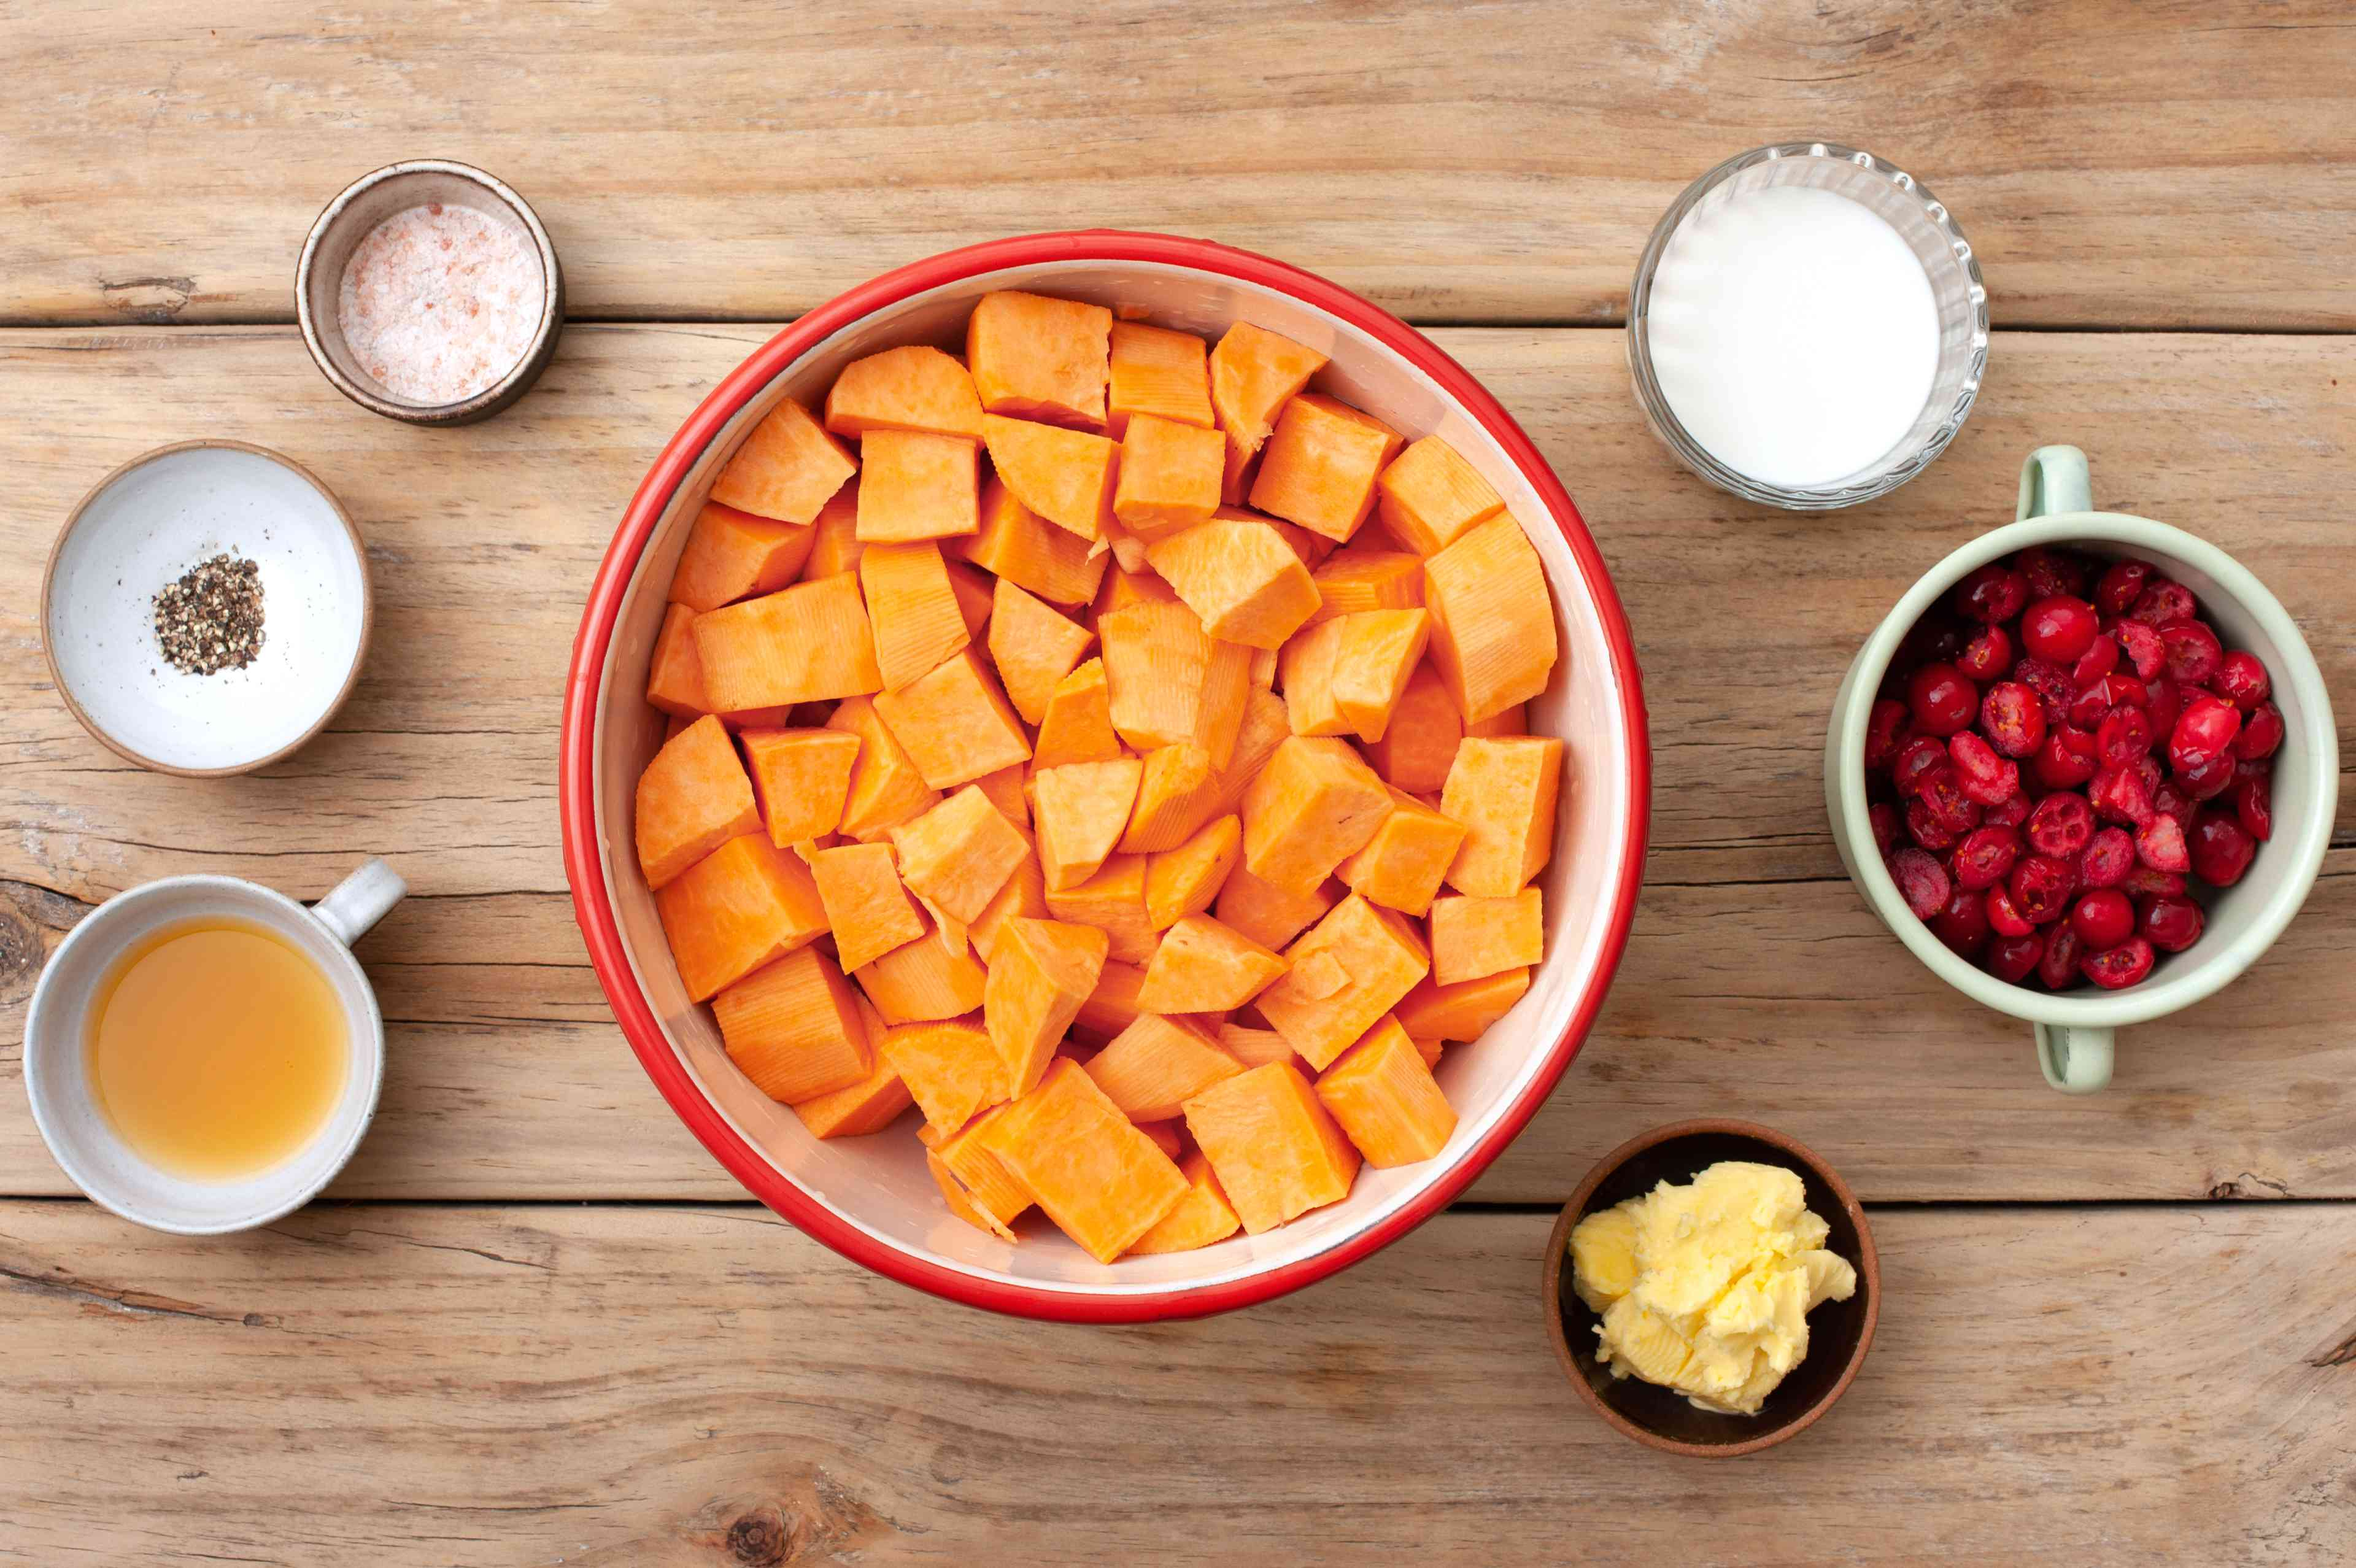 Ingredients for mashed sweet potatoes with orange juice and cranberries